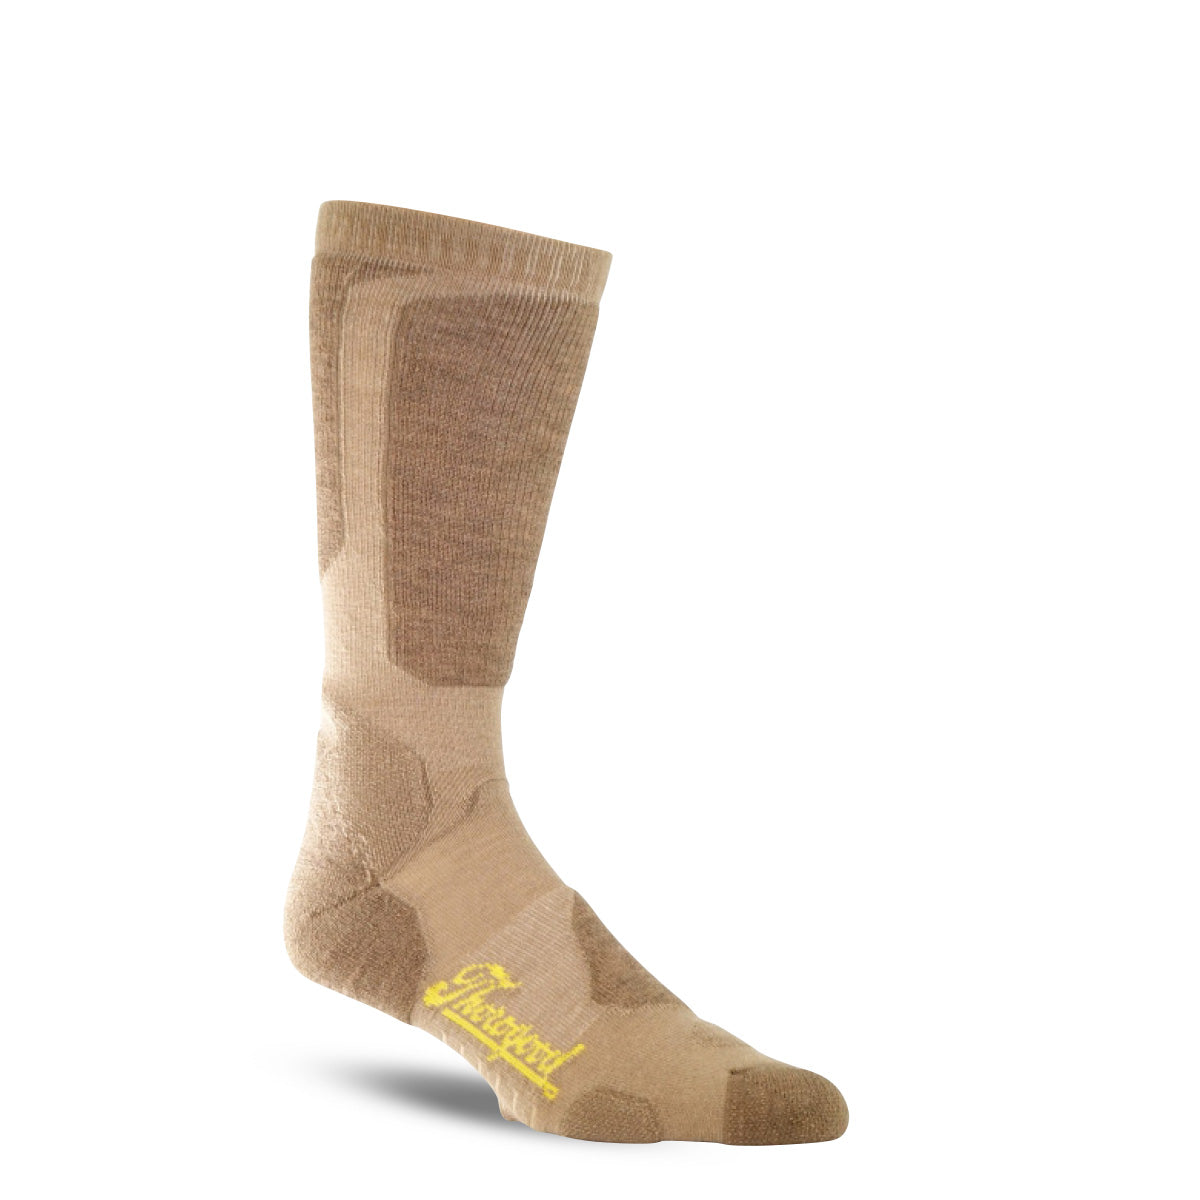 Thorogood Coyote Light Duty Crew Socks 888-5005